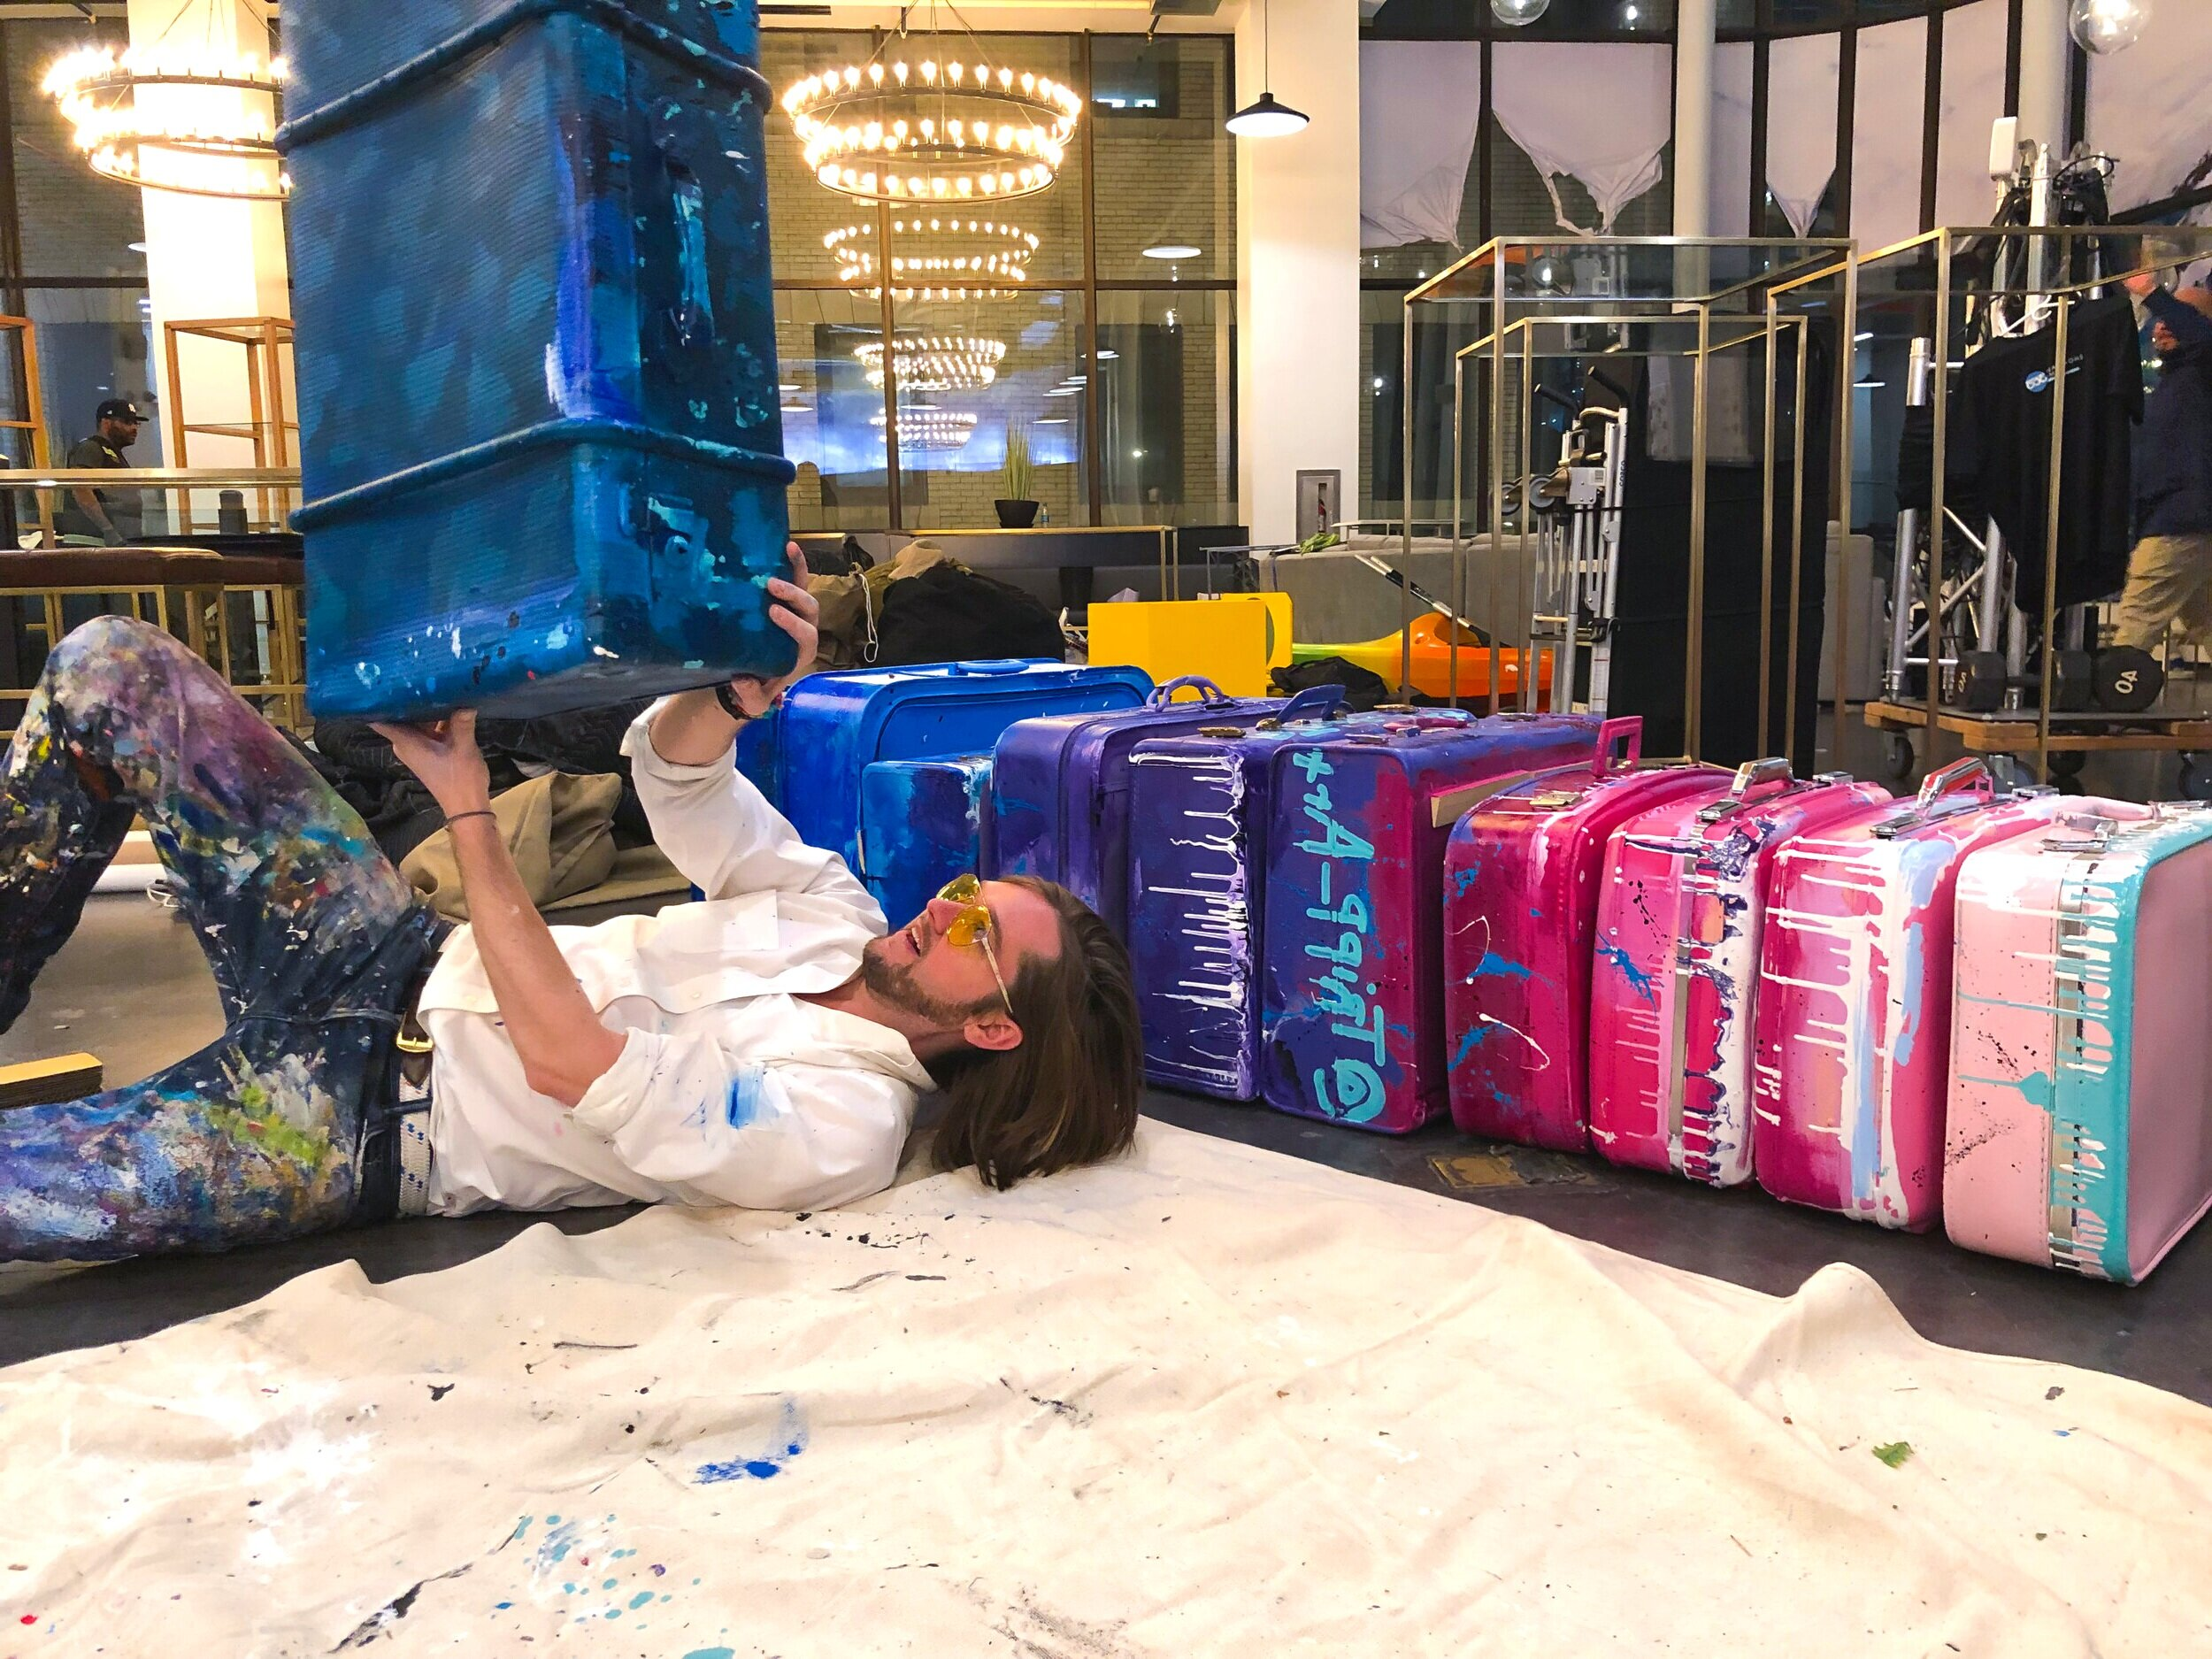 Mixed Media Installations - Whether it's a high end trade show or exclusive parties, Tripp creates engaging one-of-a-kind installations based on the theme or industry.  These provide not only entertainment for the guests, but also create opportunities to interact with the overall brand facing experience. Pictured: Tripp with custom painted suitcase installation for HRPR (Travel) trade show.